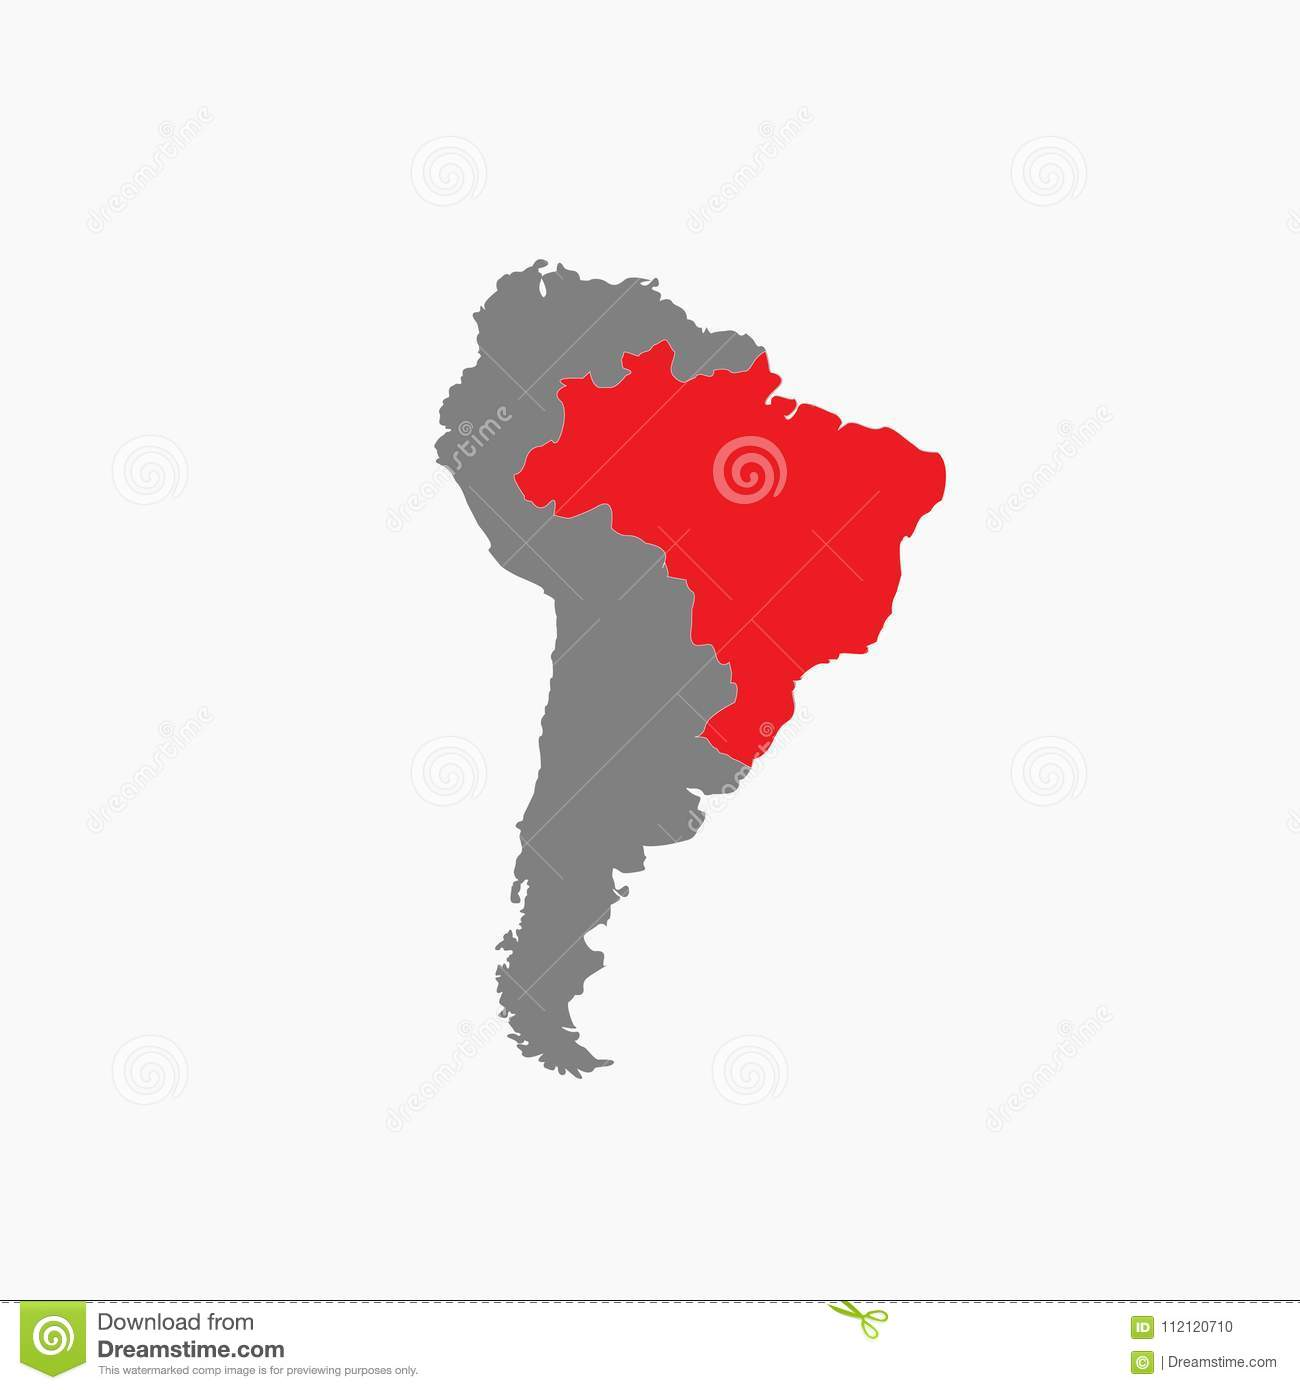 Picture of: Brazil Map South America Red Vektor Stock Illustration Illustration Of Europe Isolated 112120710